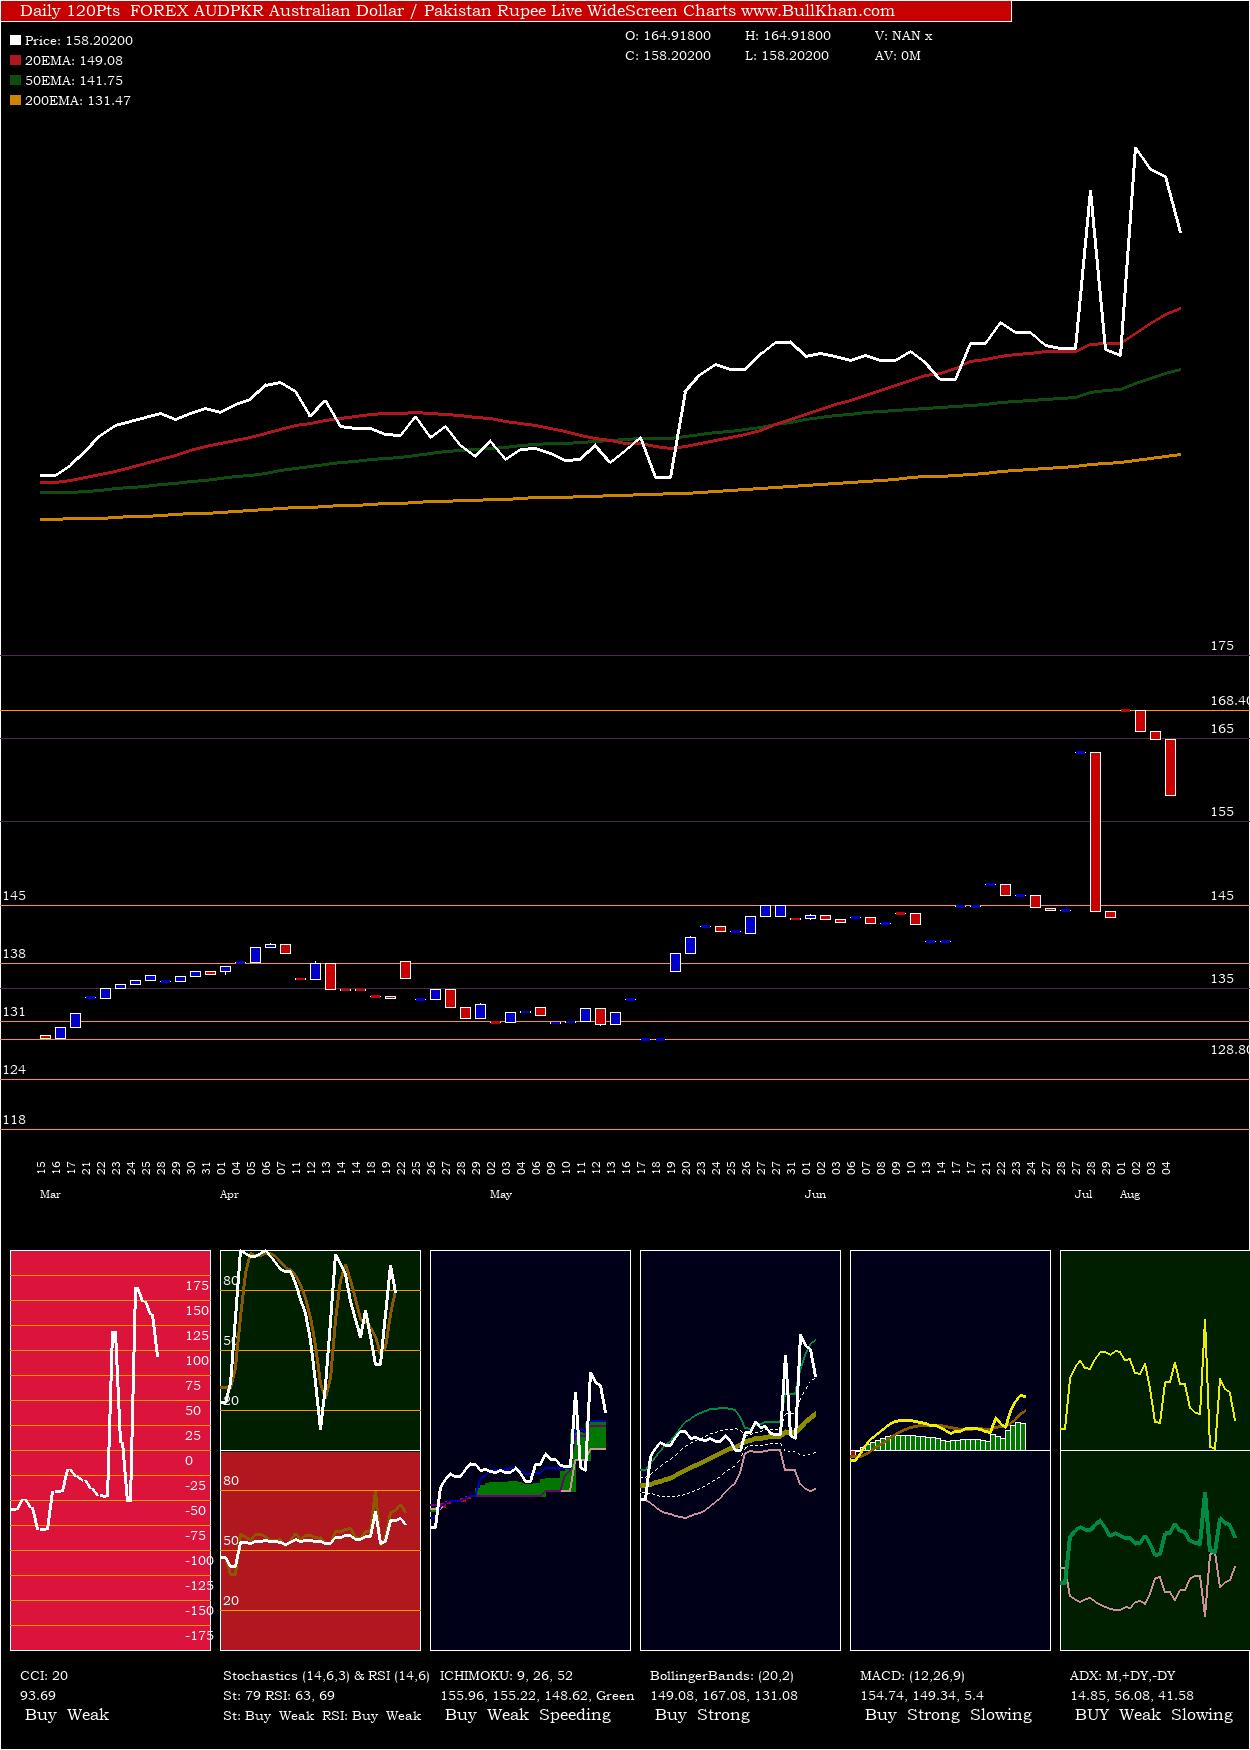 Australian Dollar / Pakistan Rupee charts and indicators